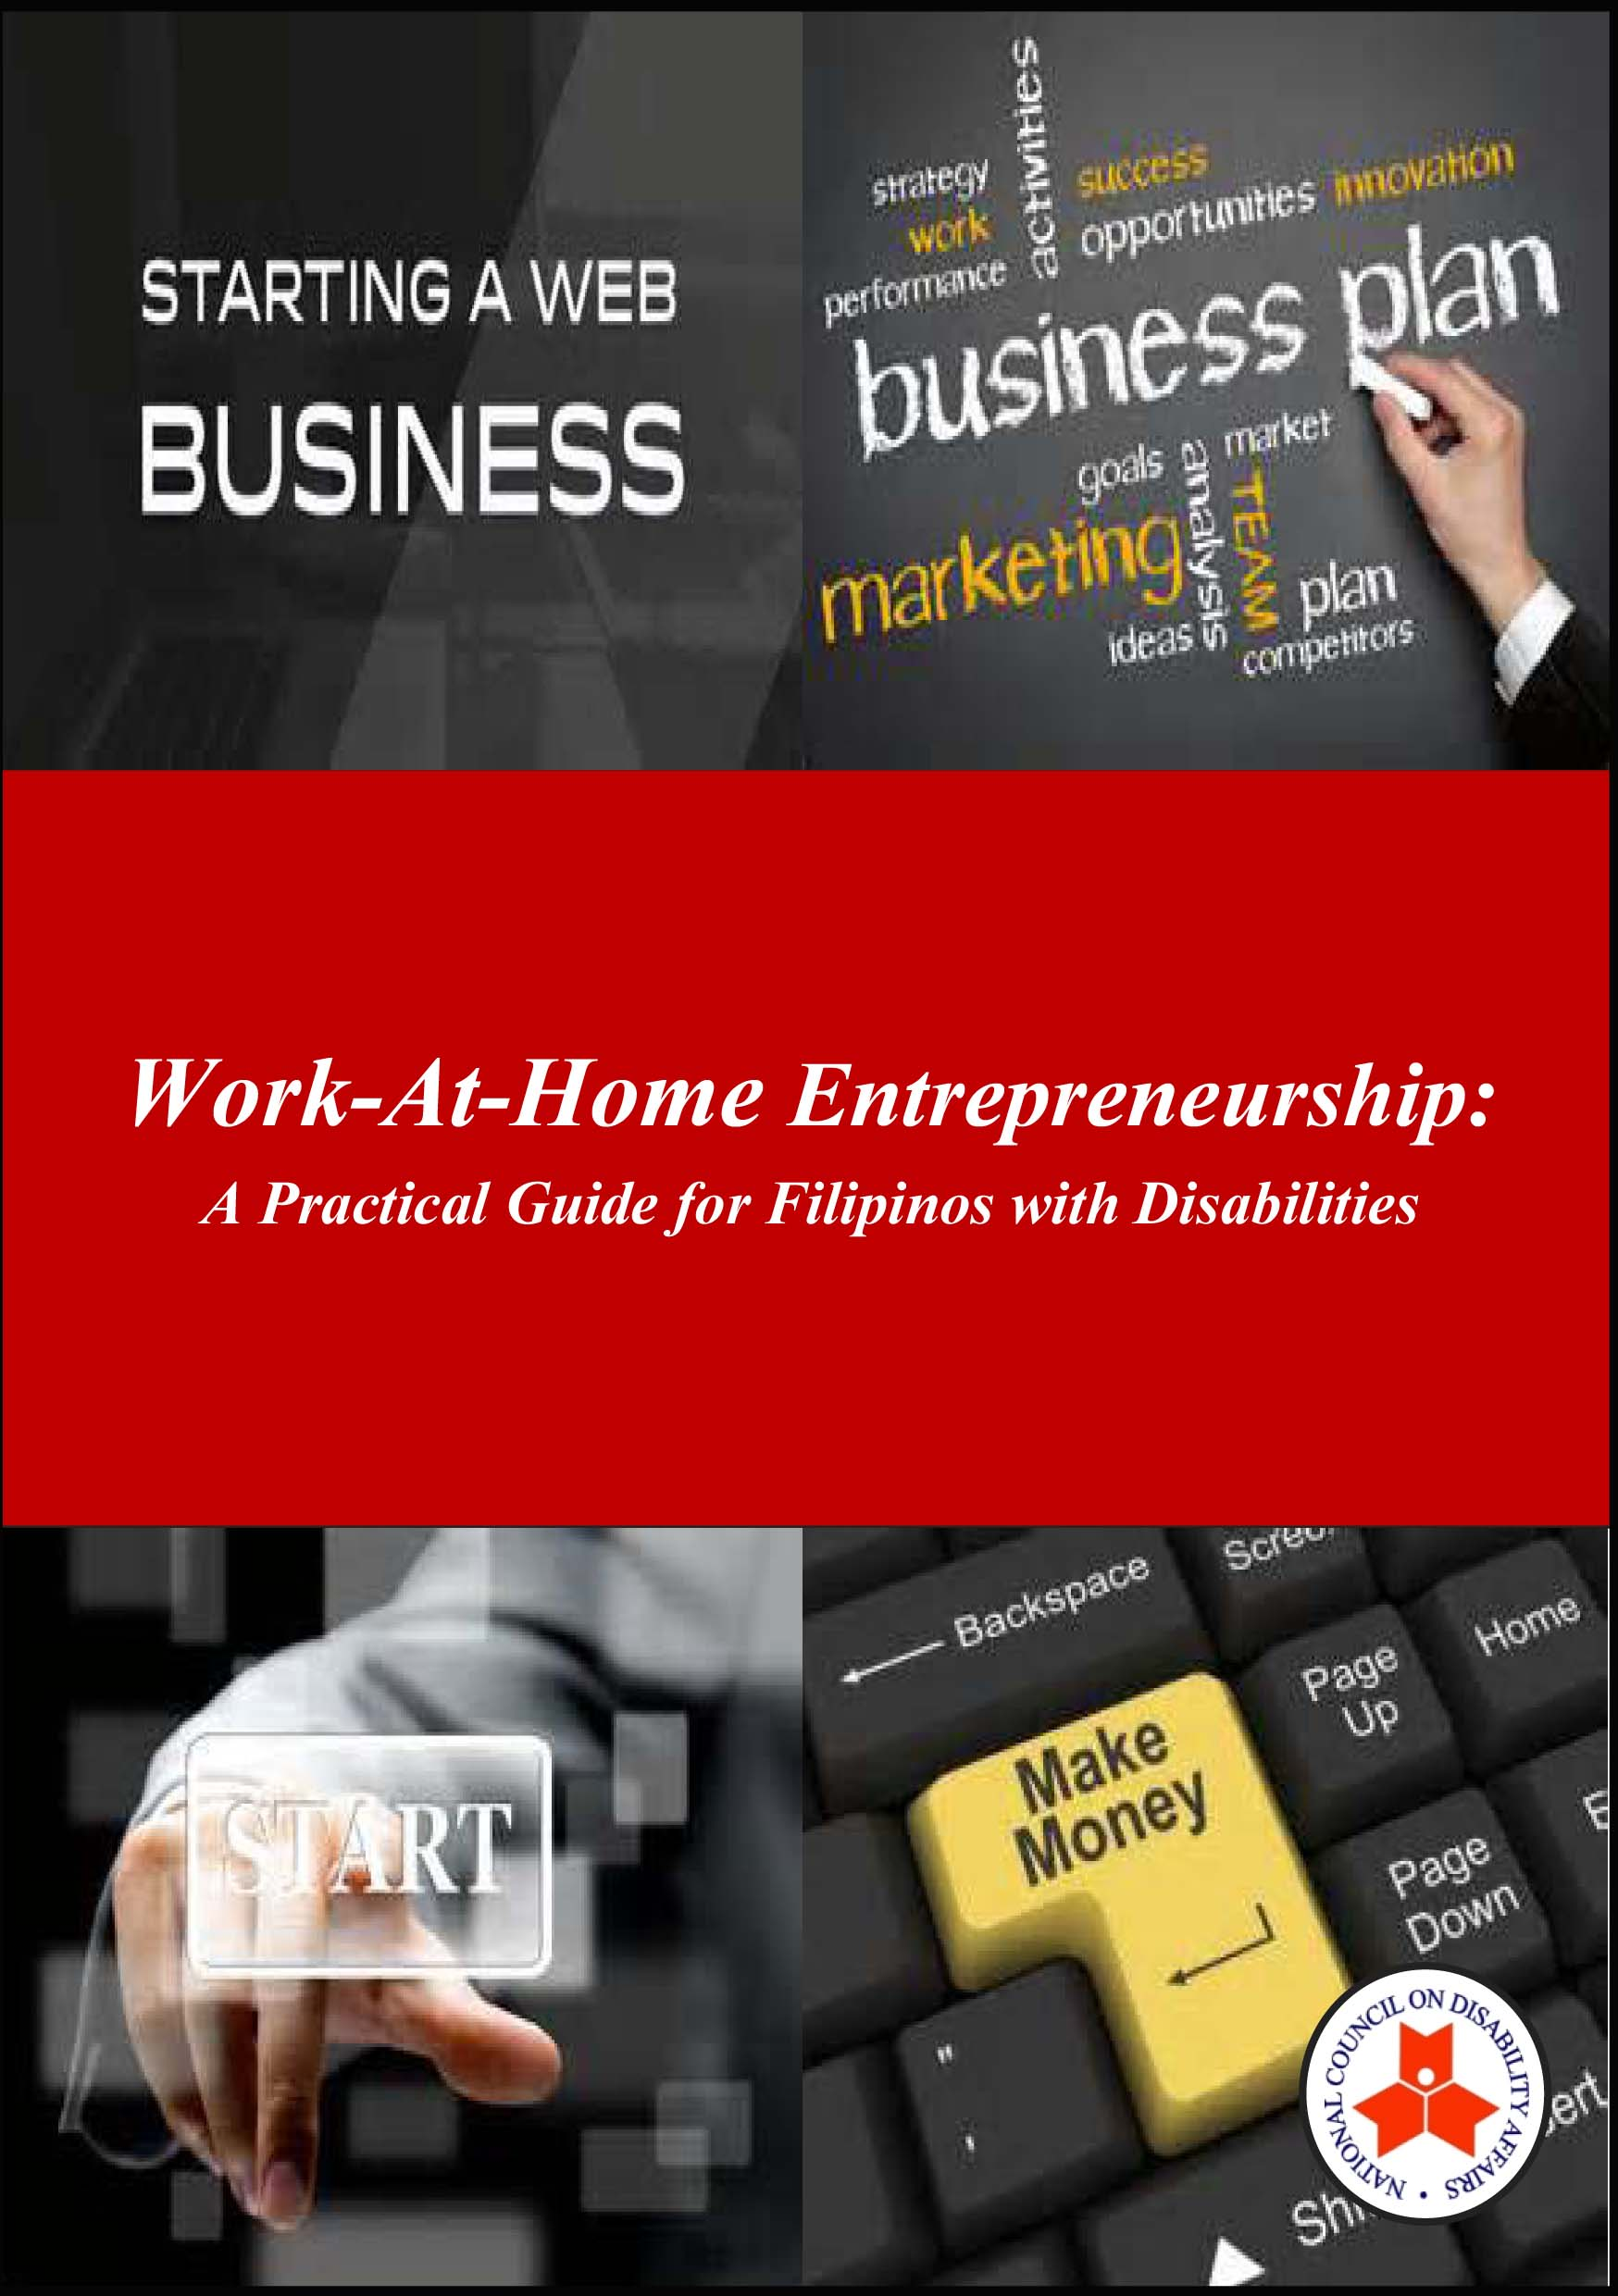 Work@Home Entrepreneurship: A Practical Guide for Filipinos with Disabilities